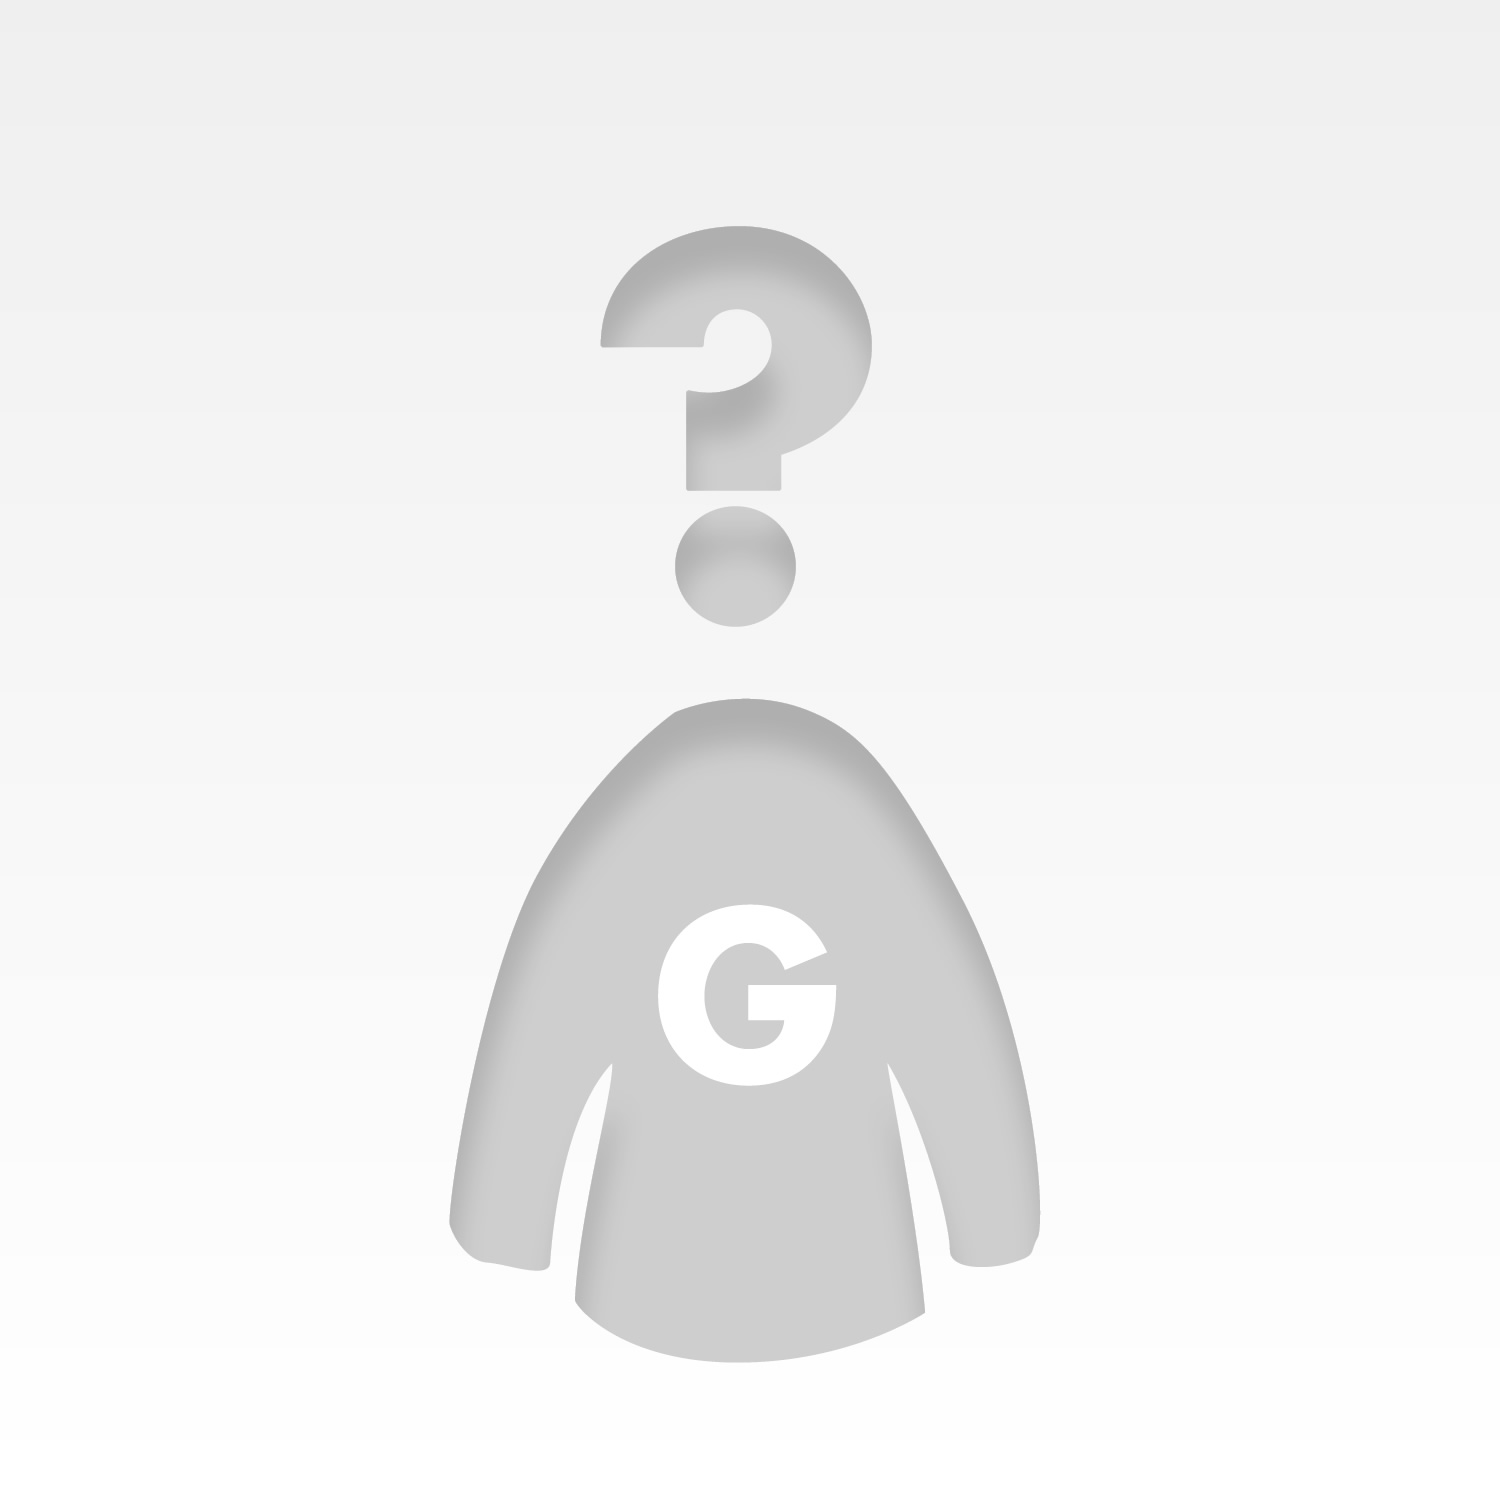 The glogdemo's avatar